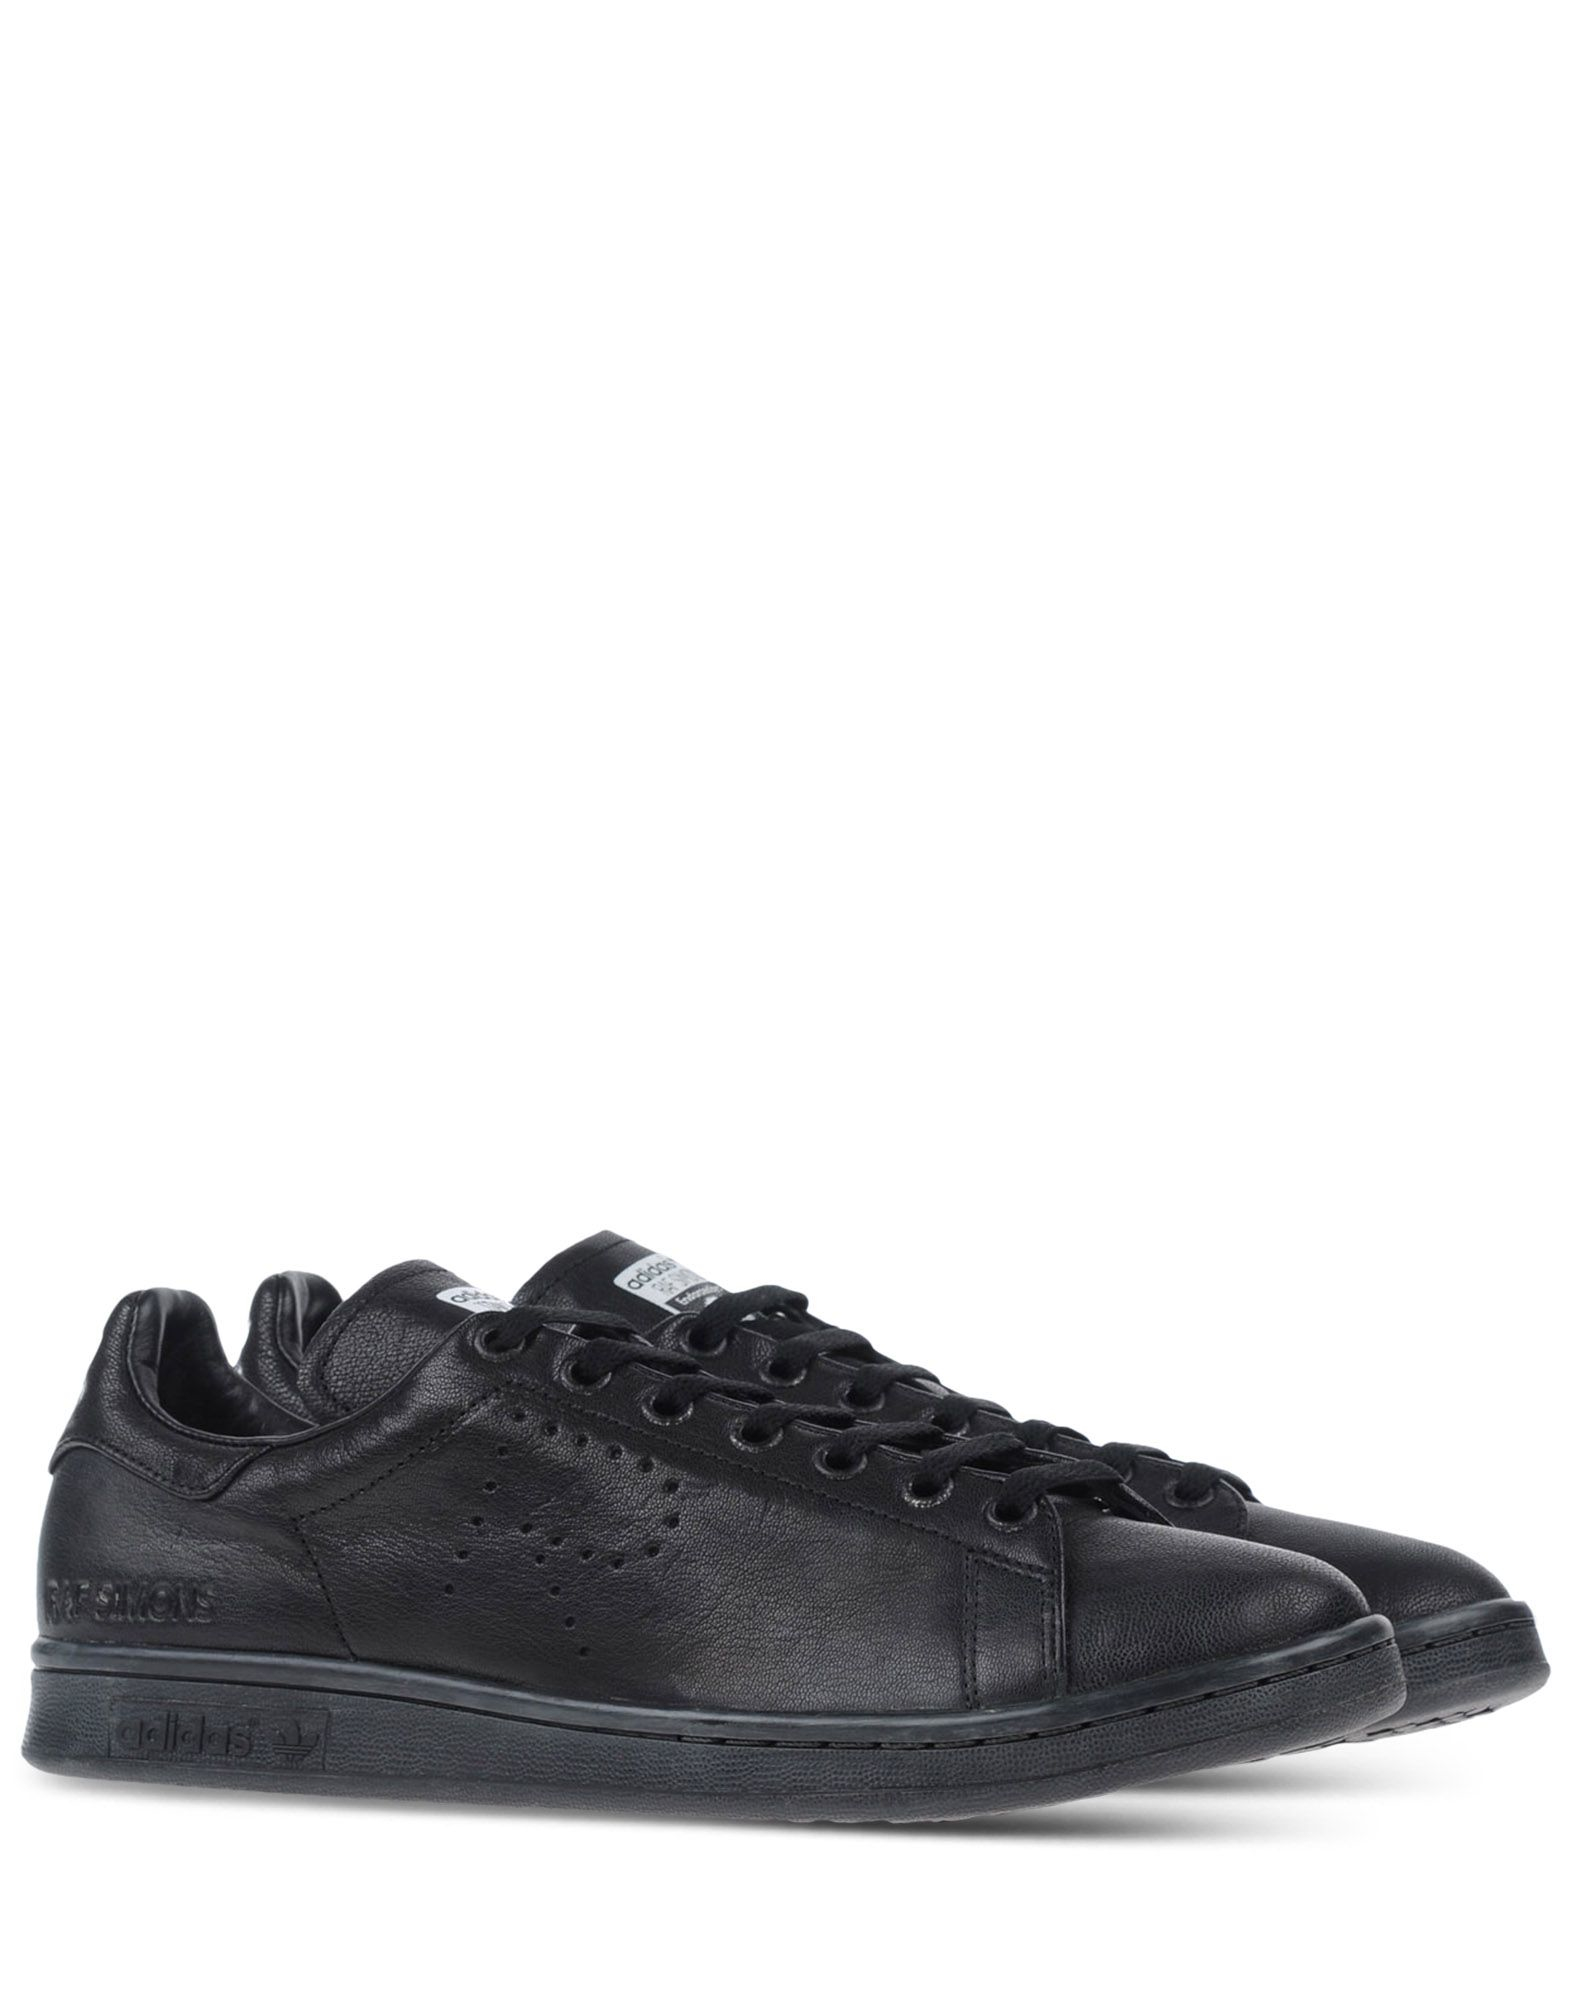 raf simons low top leather sneakers in black for men lyst. Black Bedroom Furniture Sets. Home Design Ideas